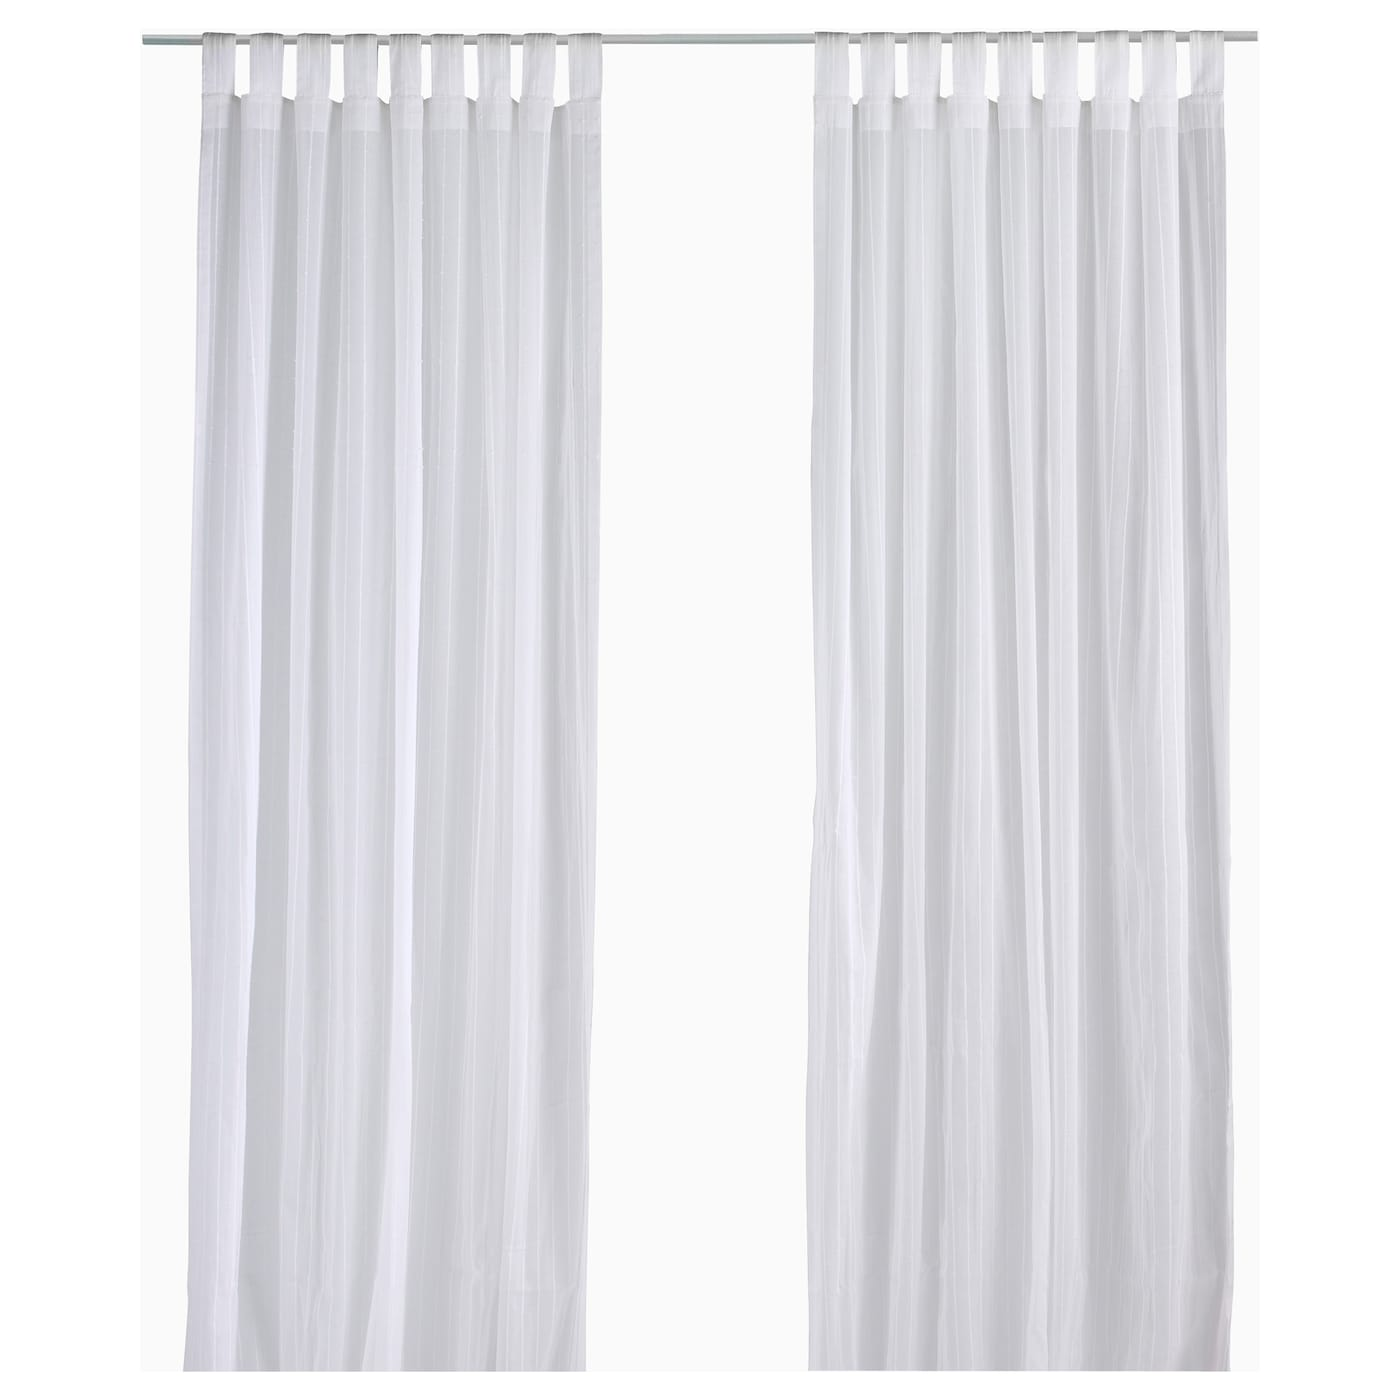 matilda sheer curtains 1 pair white 140 x 250 cm ikea